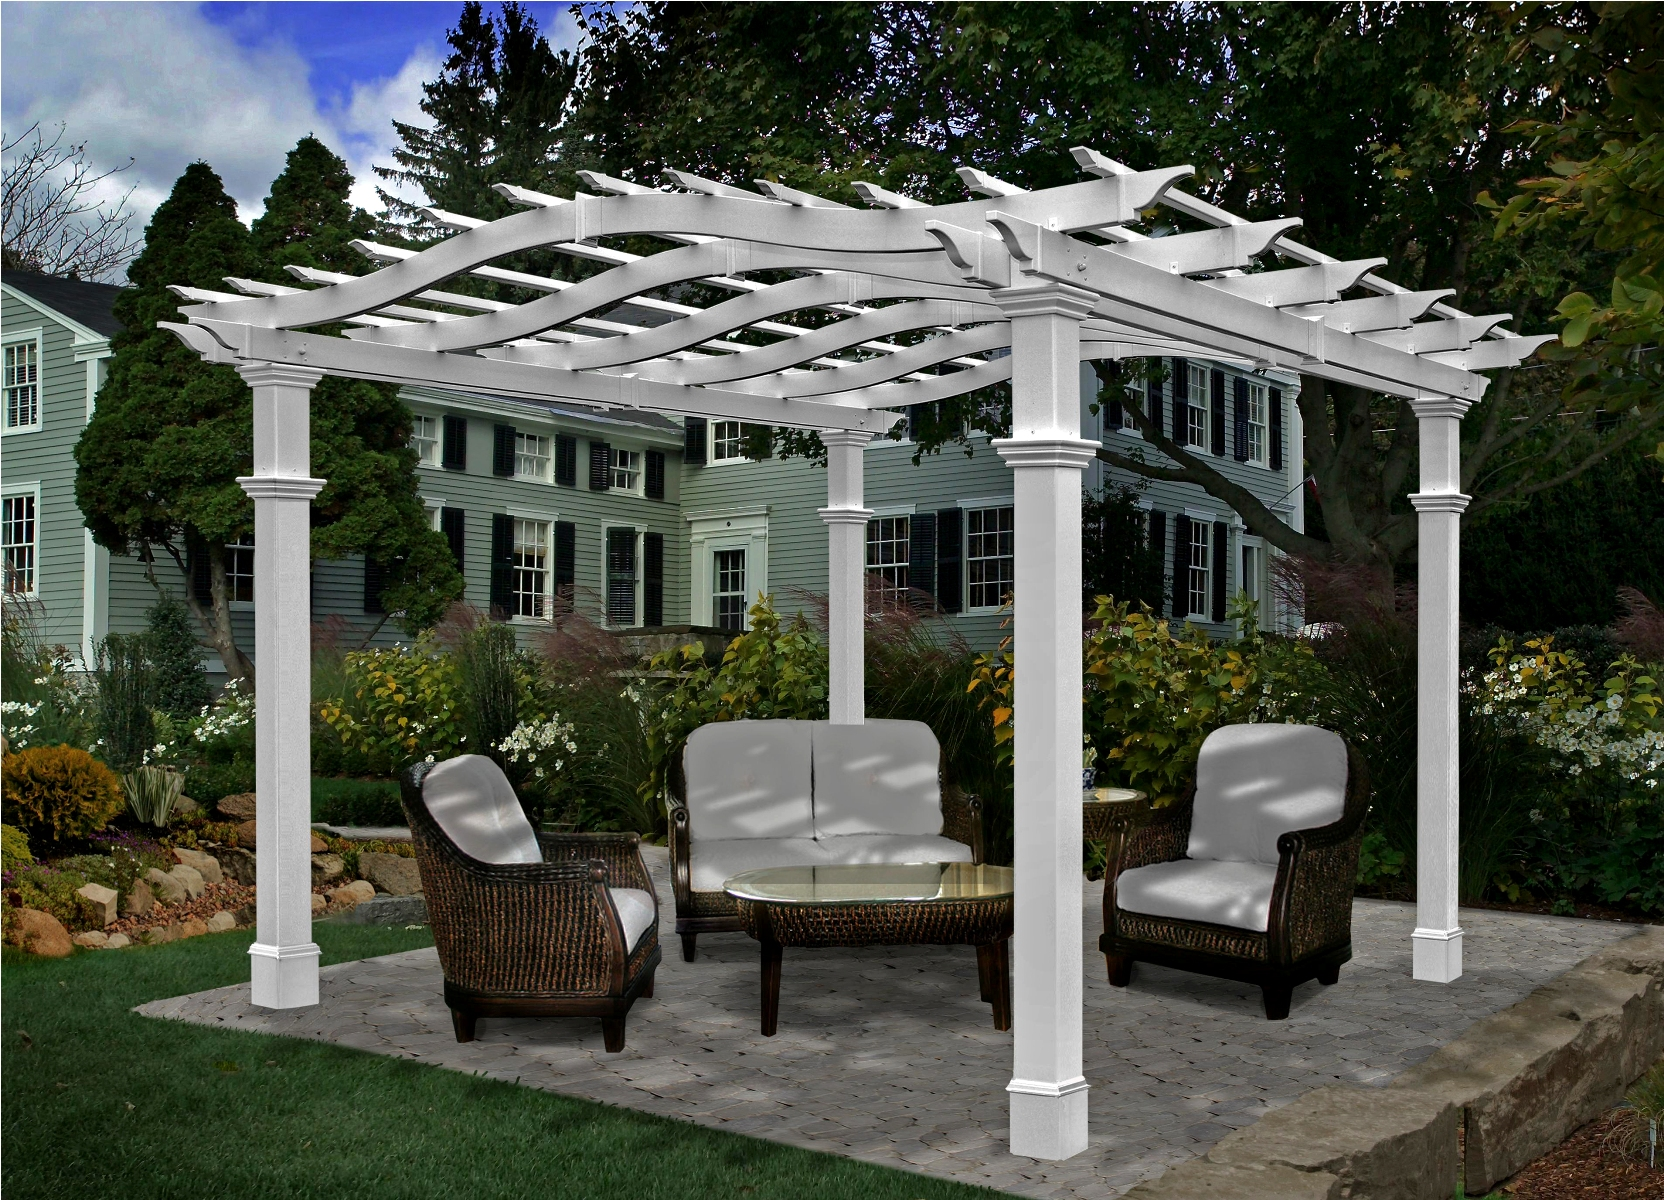 Outdoor Lighting Design For PergolaOutdoor Lighting Design For Pergola | Interior Decorating